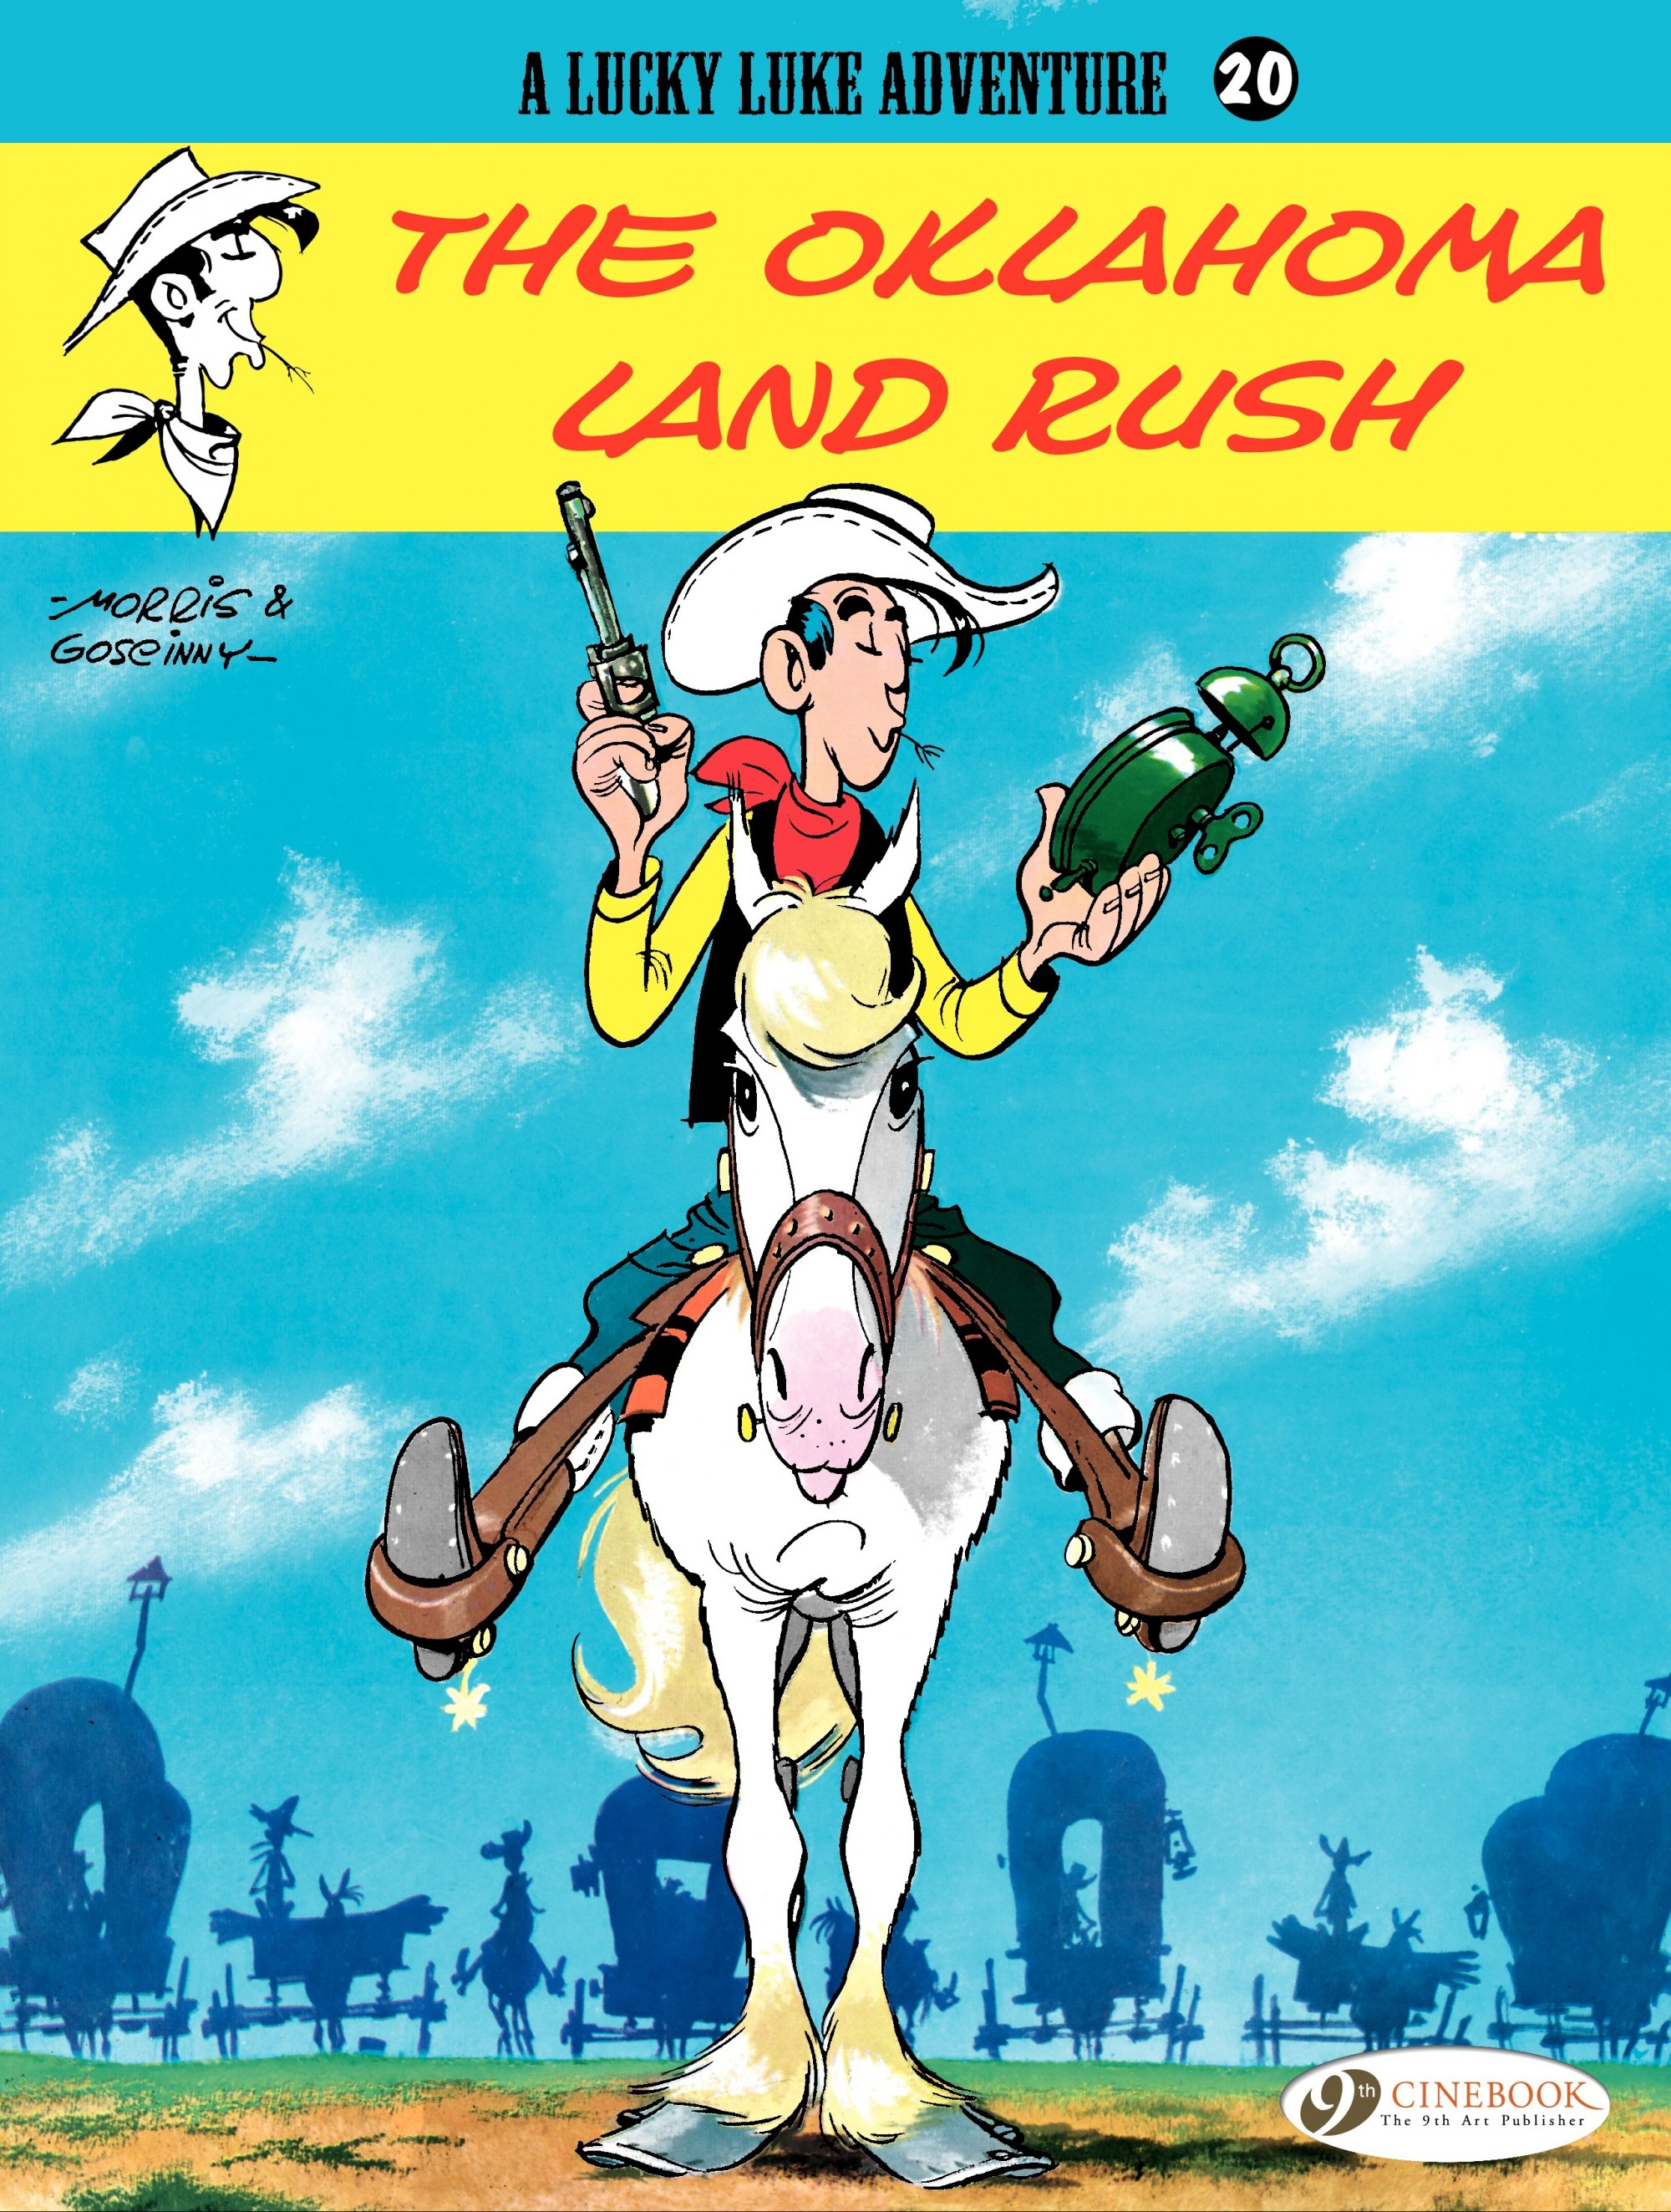 A Lucky Luke Adventure 20 Page 1